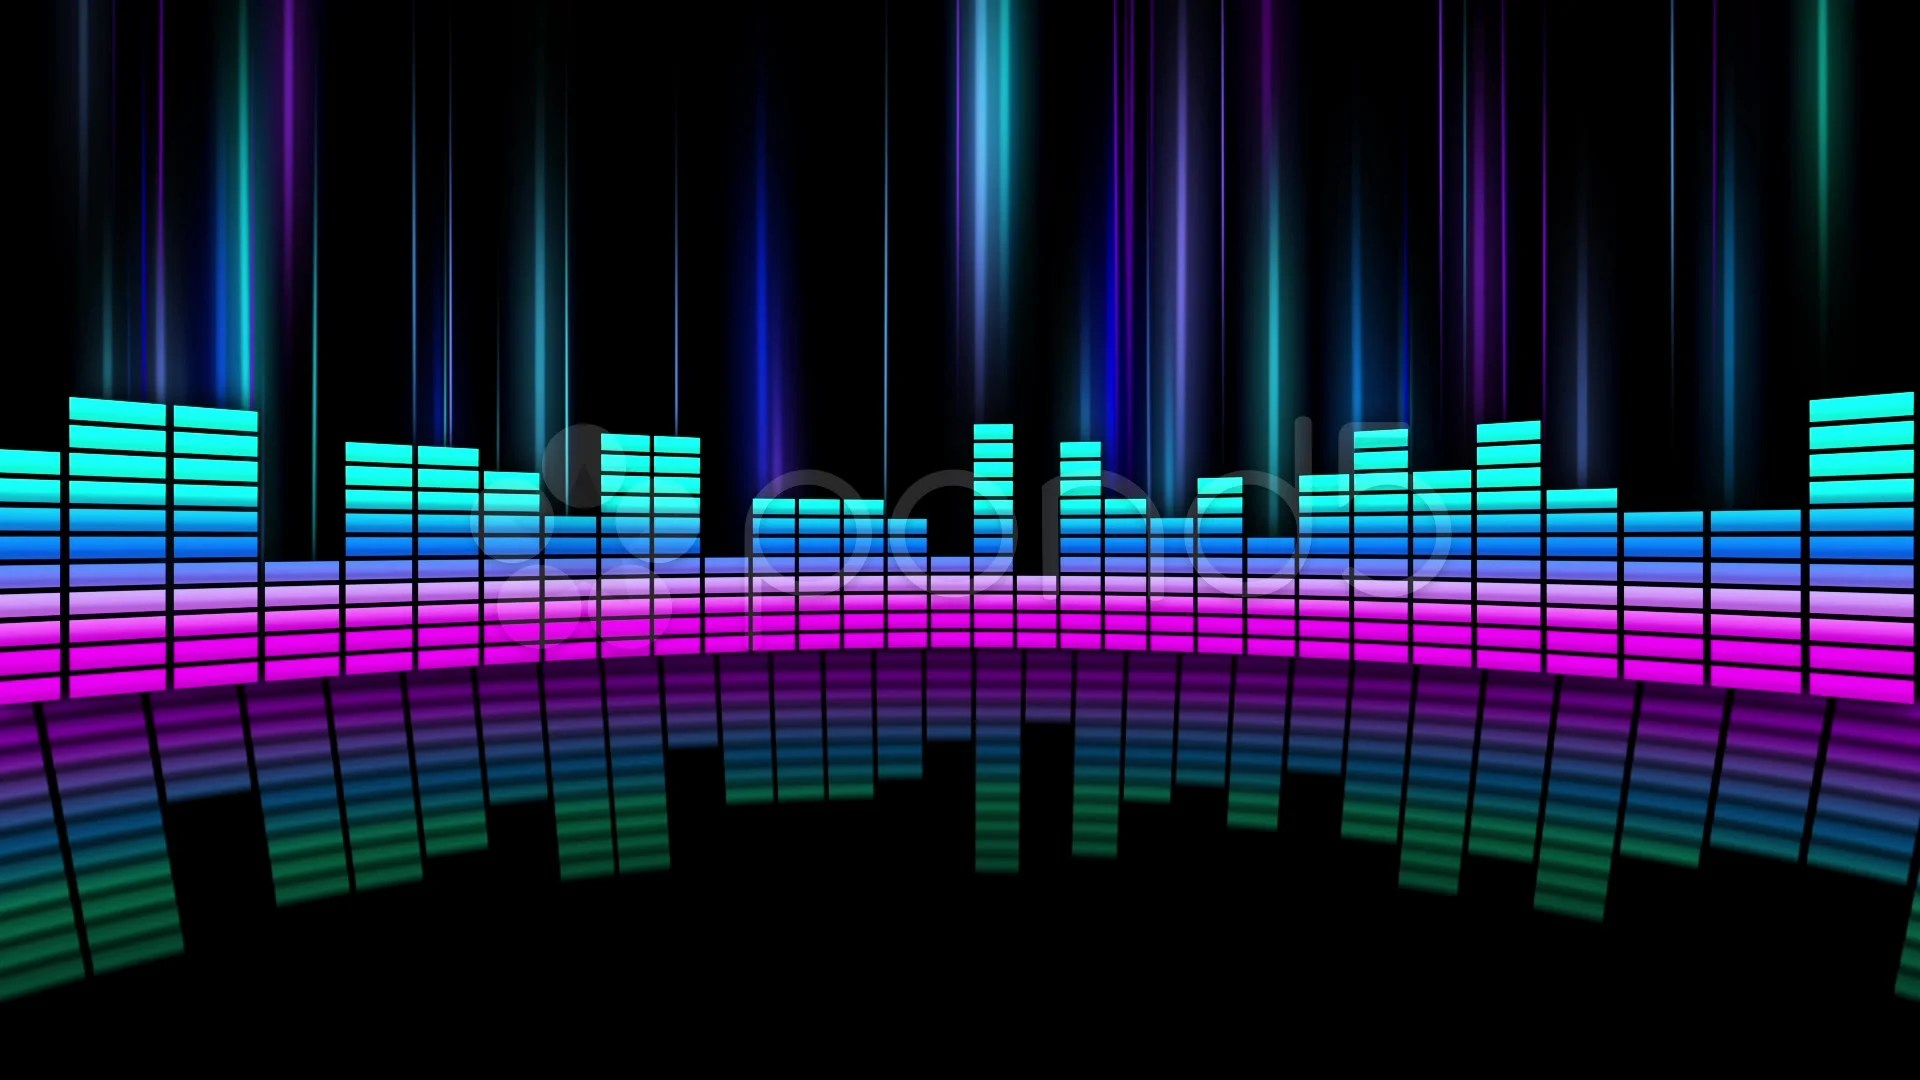 3d Depth Purple Abstract Wallpapers Stock Video Neon Equalizer 04 Buy Now 37628454 Pond5